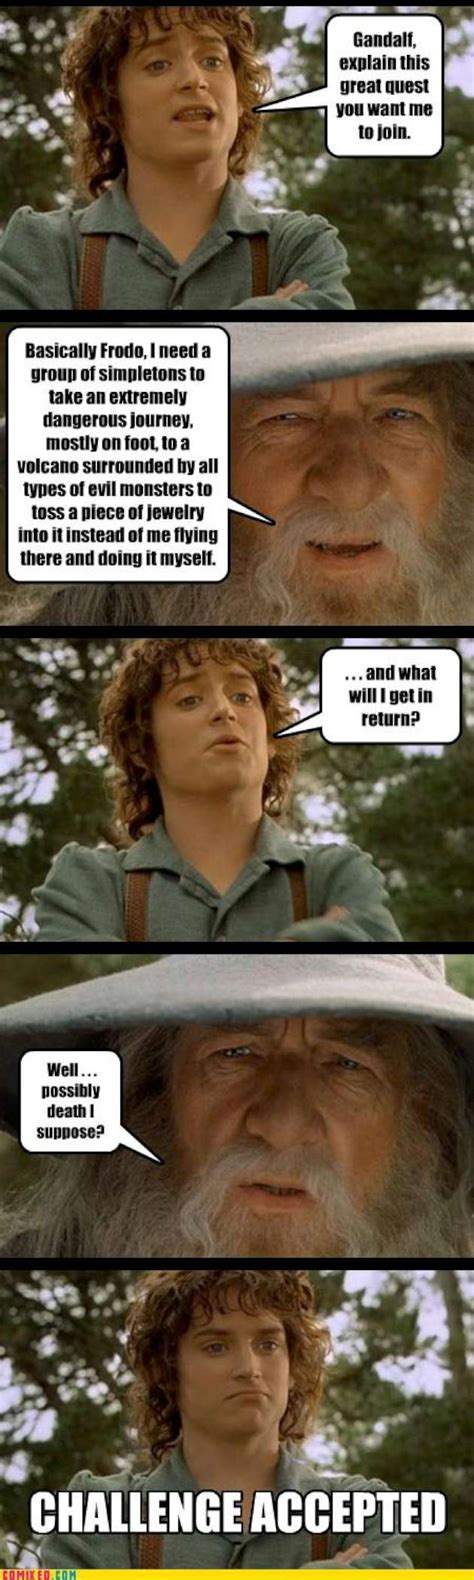 Frodo Meme - pin funny frodo meme lord of the rings on pinterest